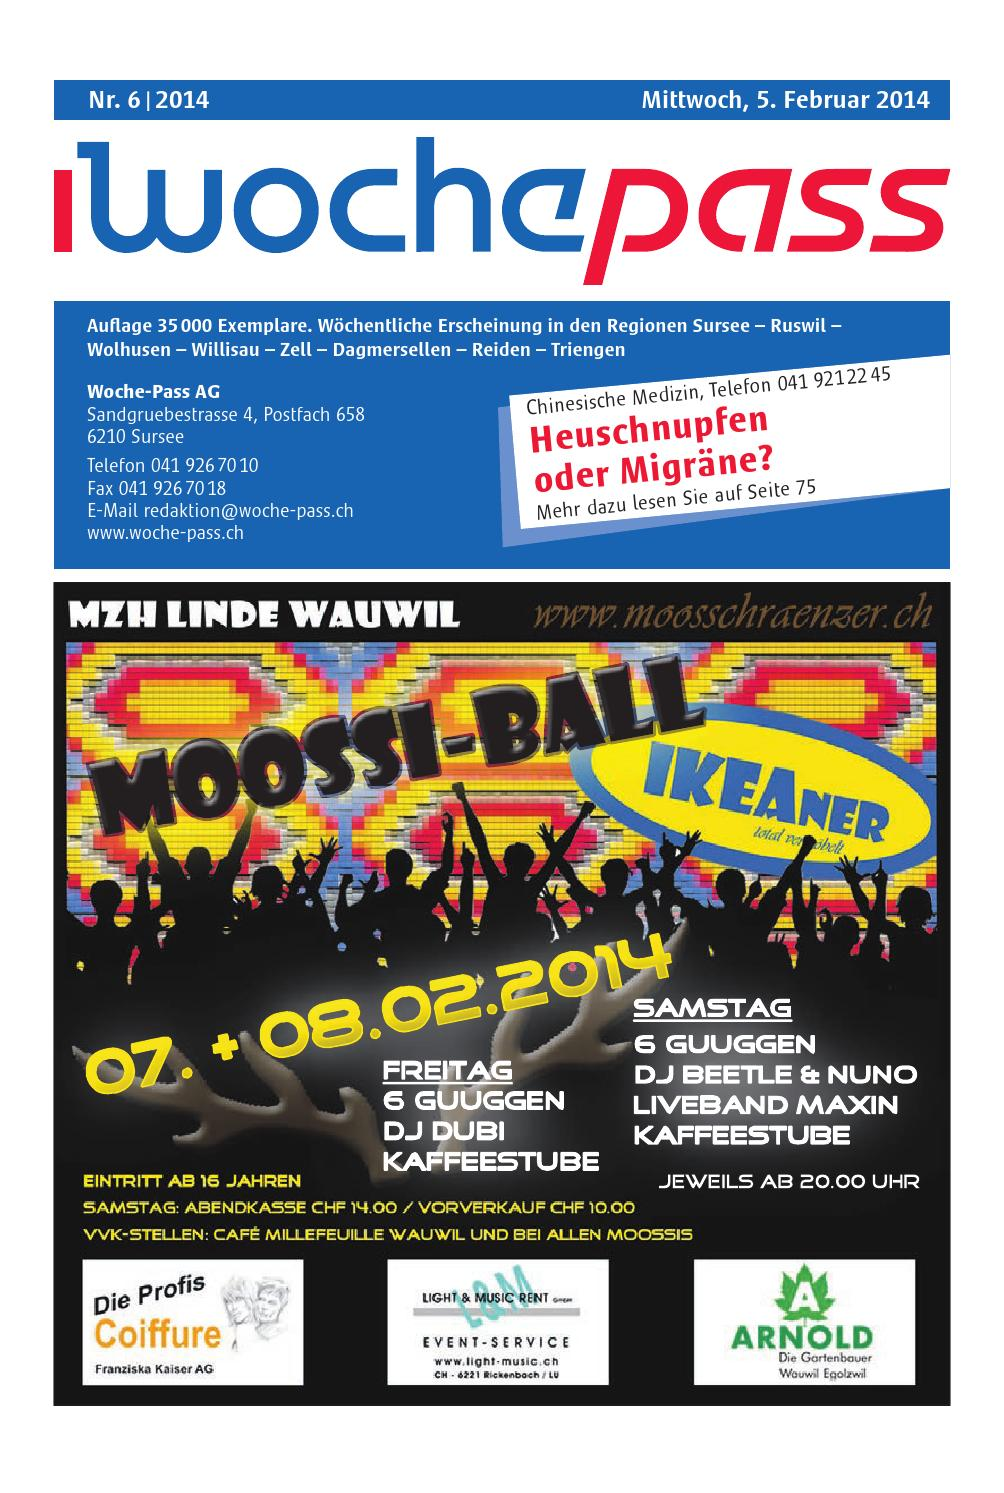 Woche Pass | KW 6 | 5. Februar 2014 by Woche Pass AG issuu